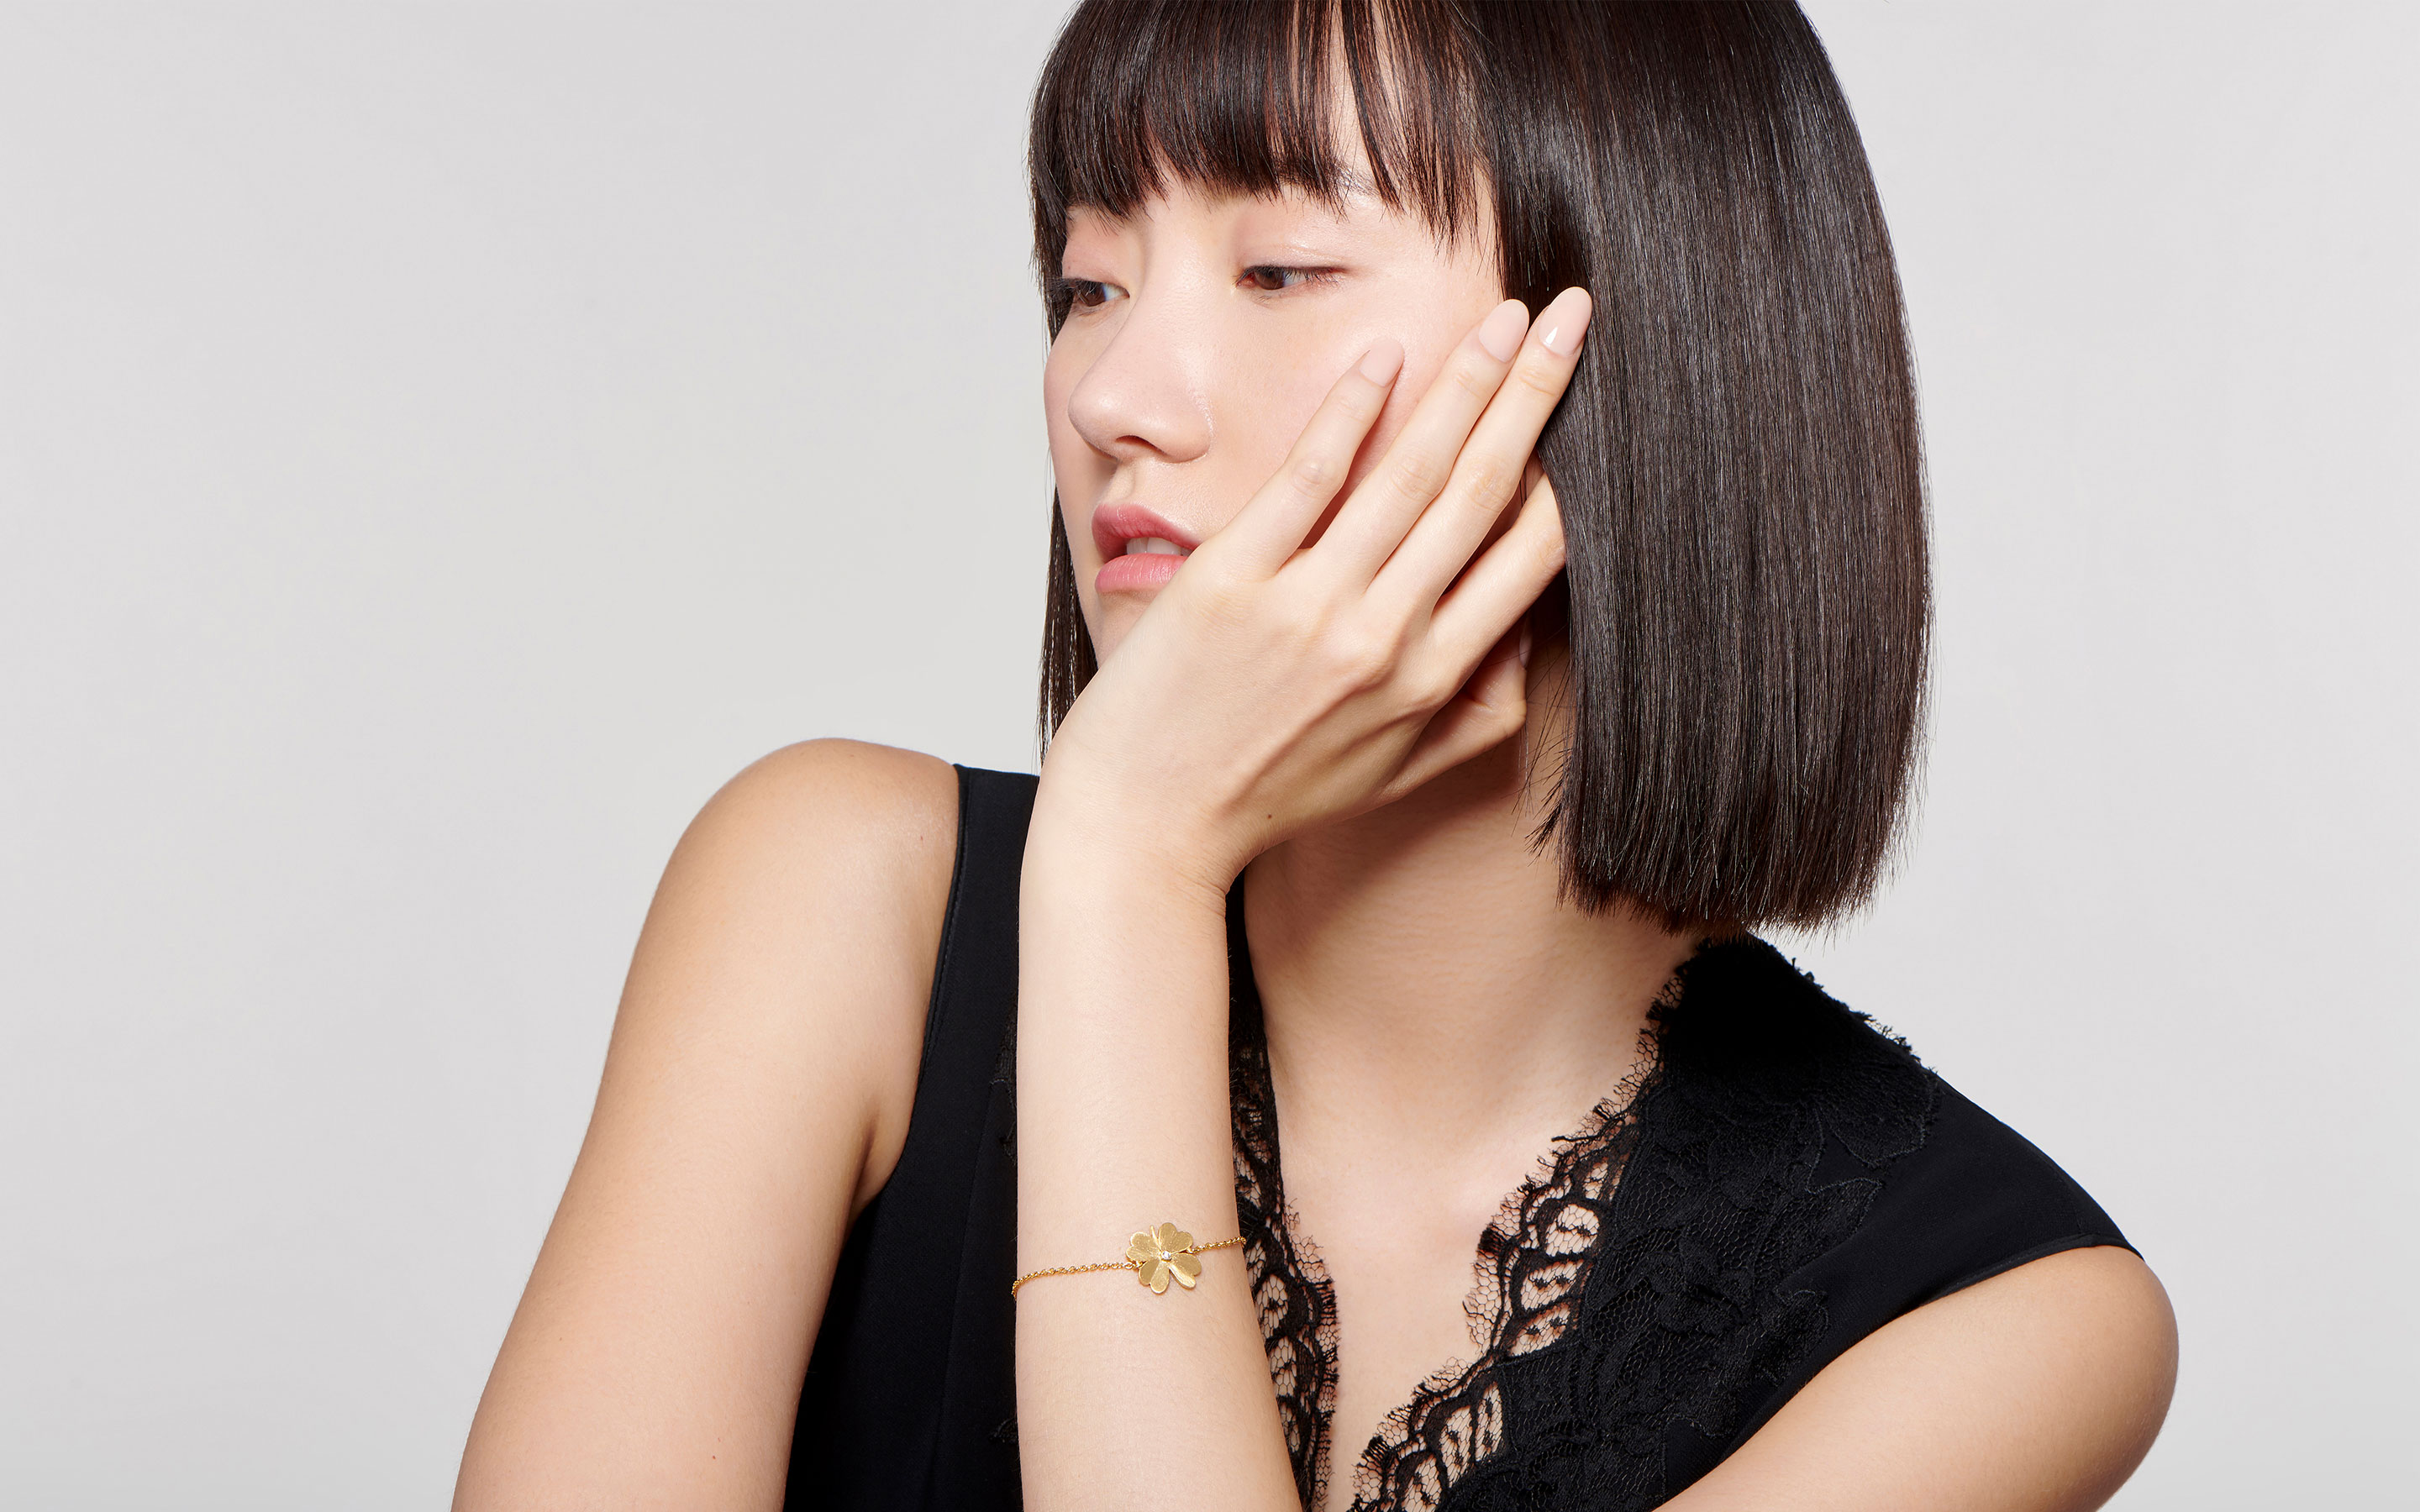 charming Asian model  sporting a pretty central cut round diamond on a satin finished 22 karat gold bracelet shaped in a four-leaf clover design